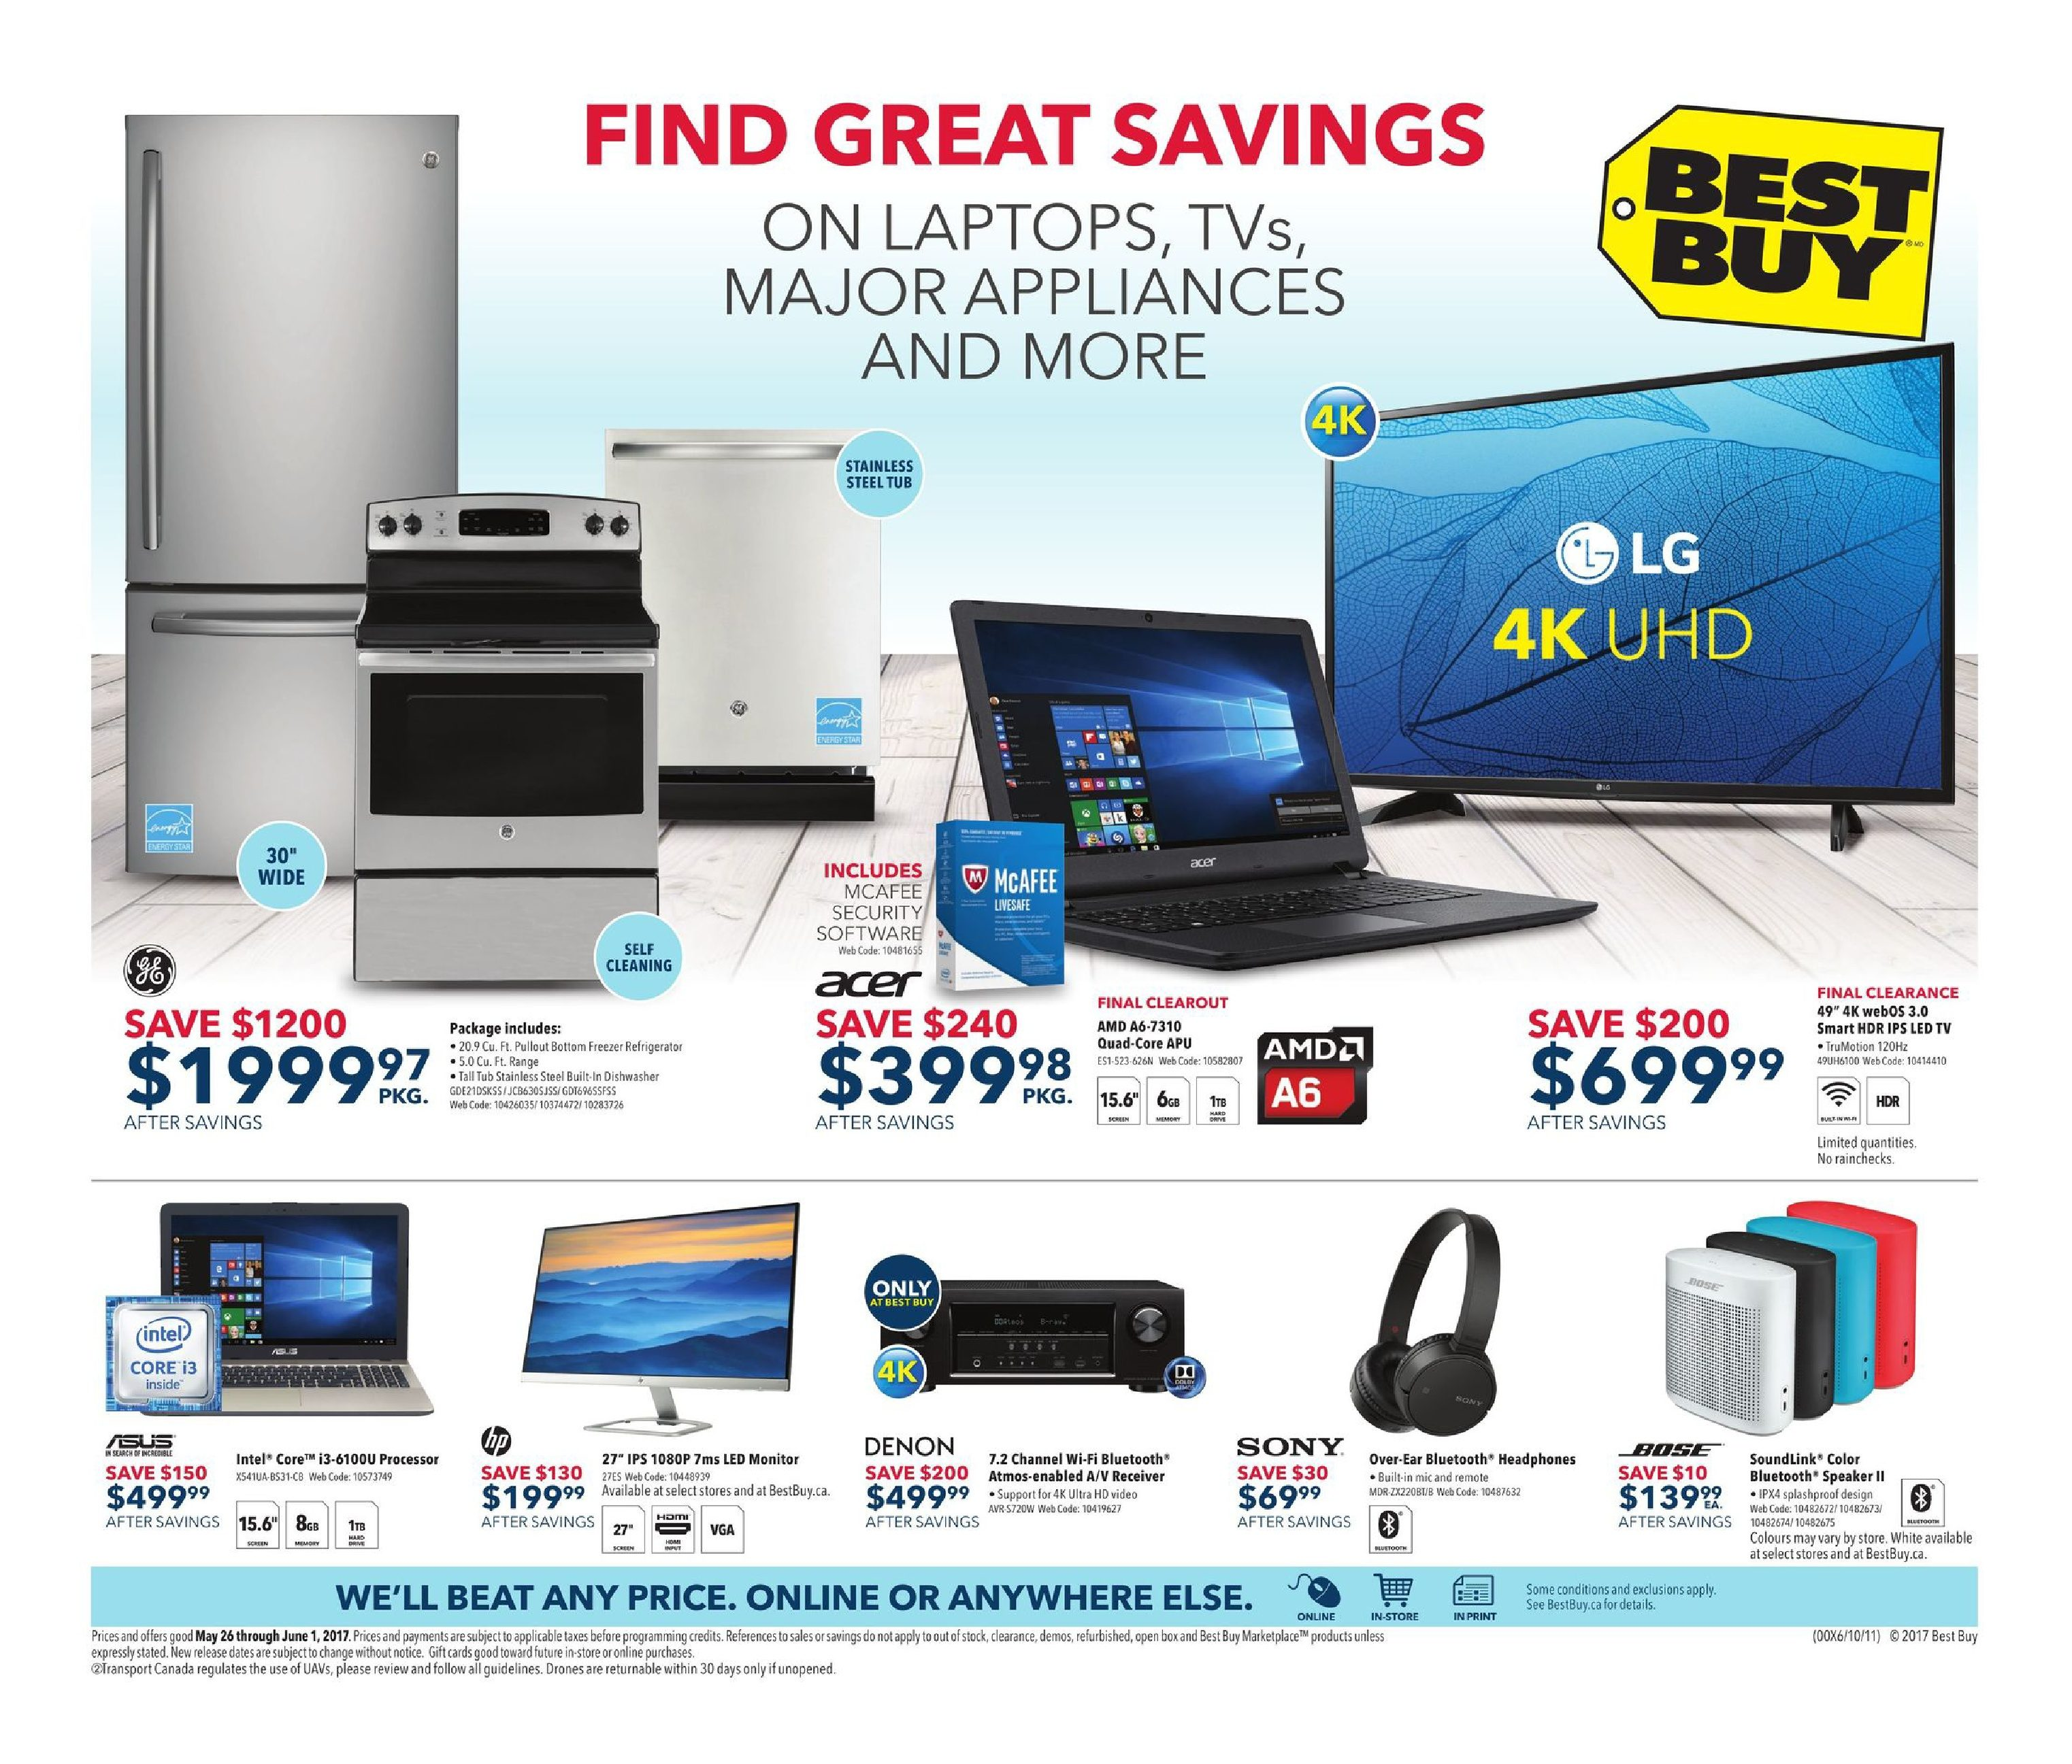 best buy weekly flyer weekly find great savings may 26 jun 1 rh redflagdeals com